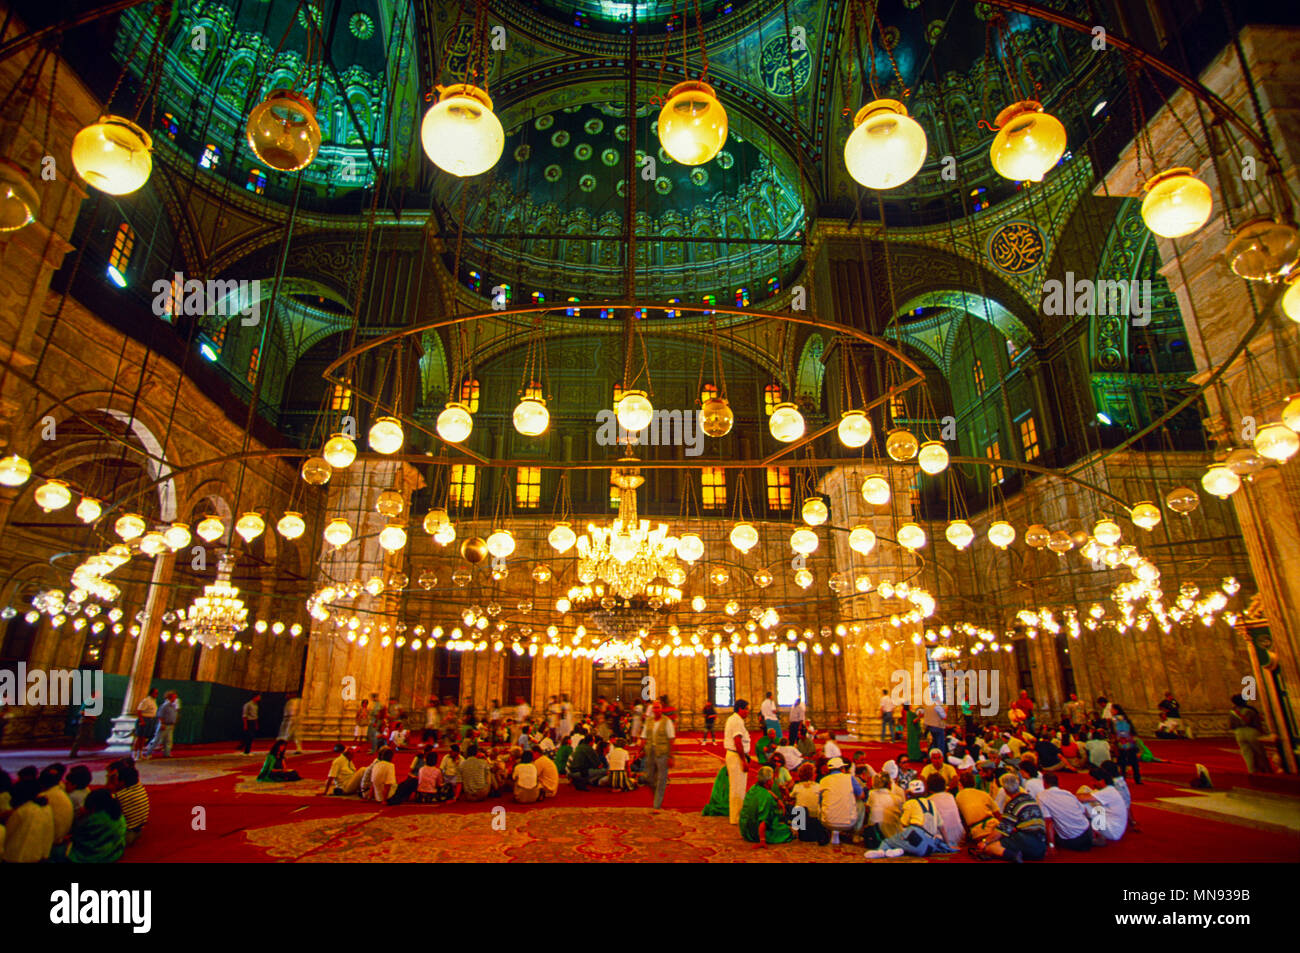 Cairo, Egypt; Prayer hall of the Mosque of Muhammad Ali Pasha or Alabaster Mosque - Stock Image